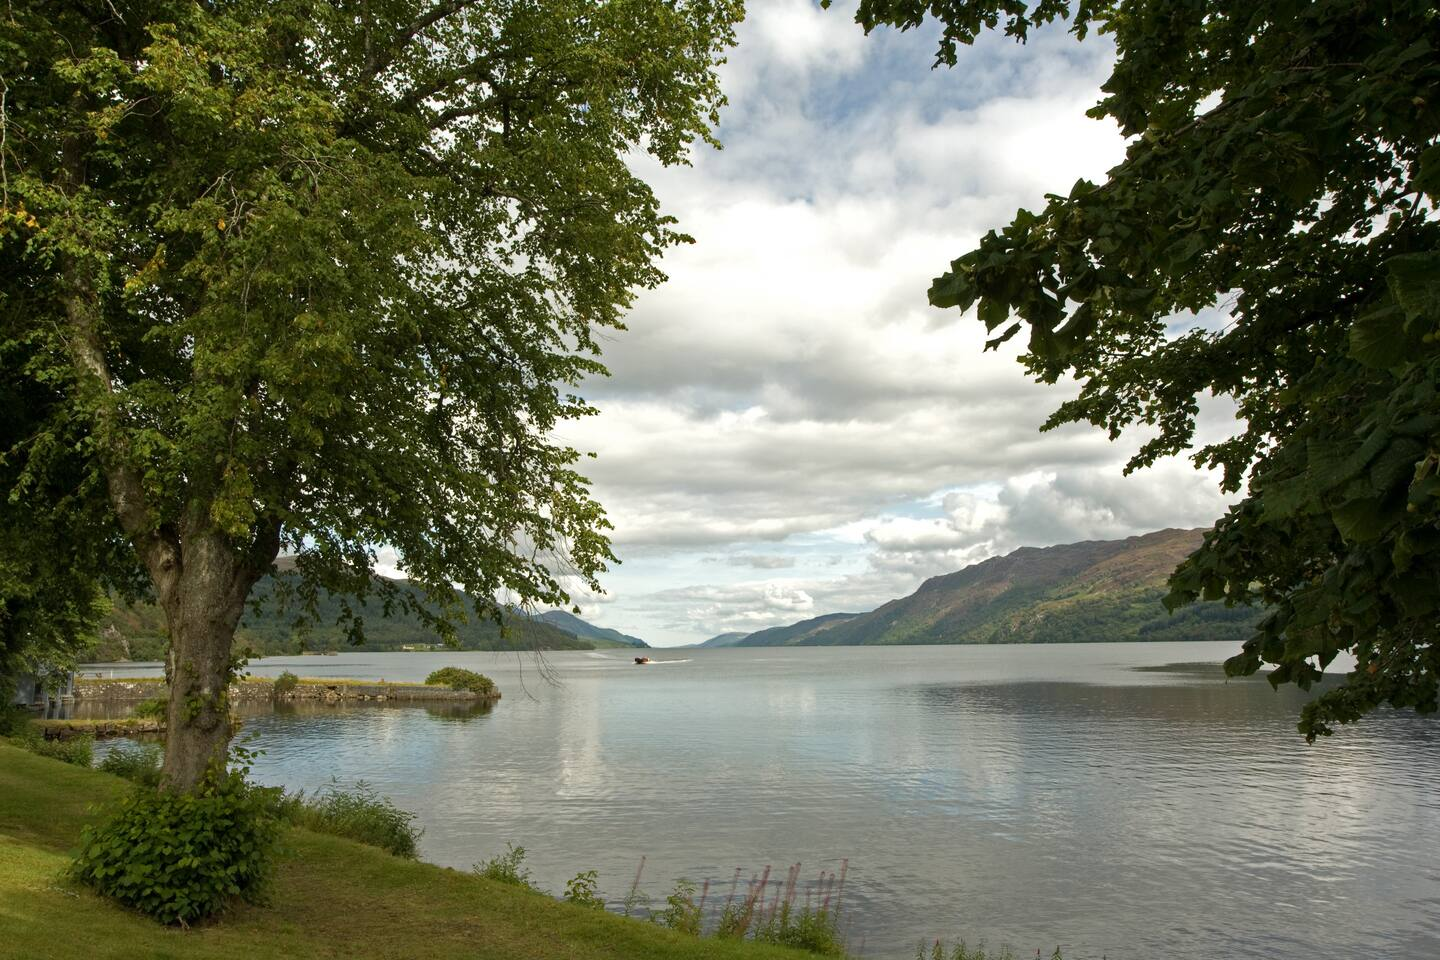 Fans of the mystery can go hunting for the Loch Ness Monster